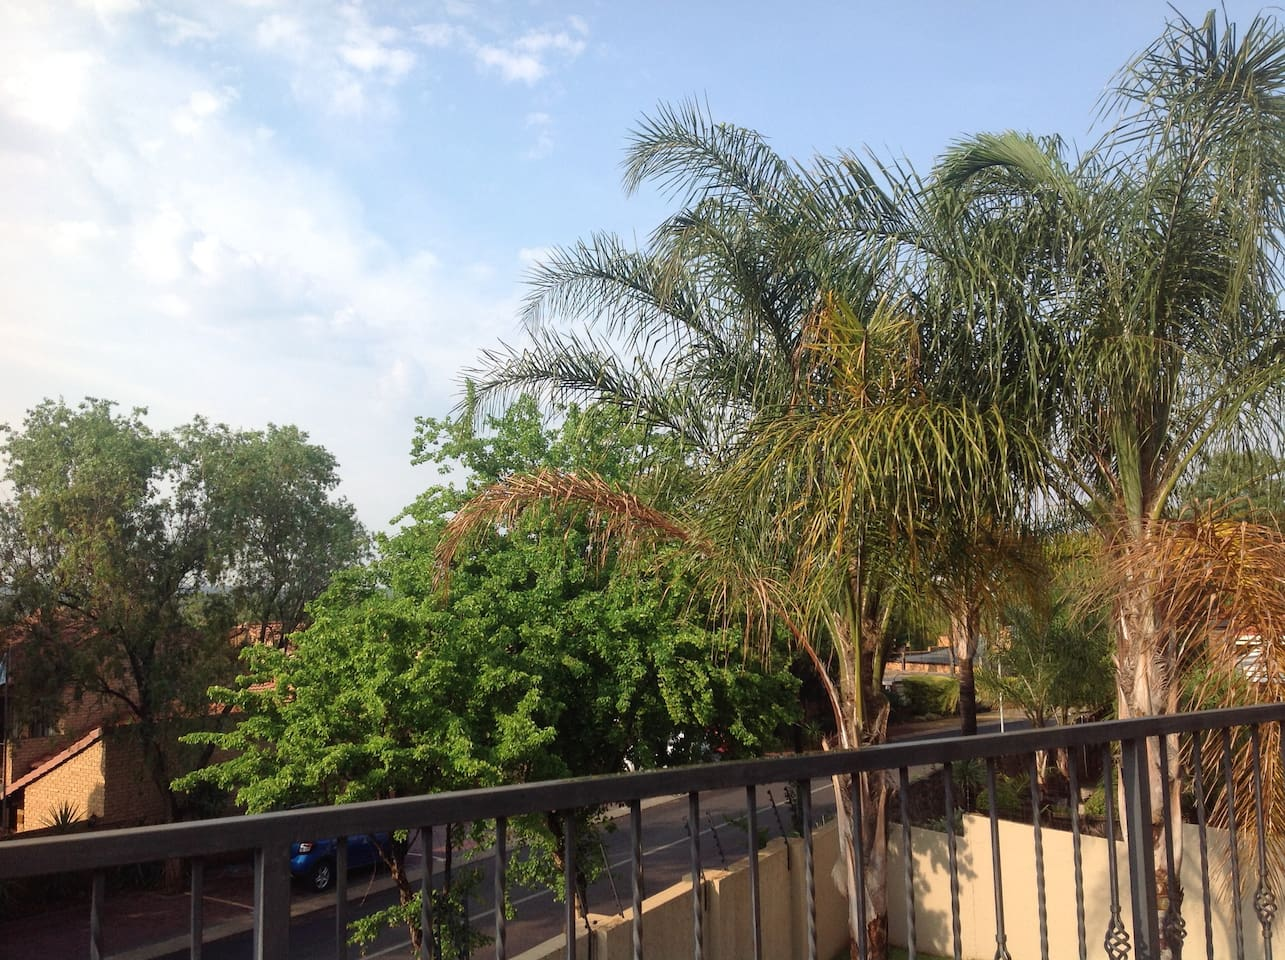 View from balcony of house